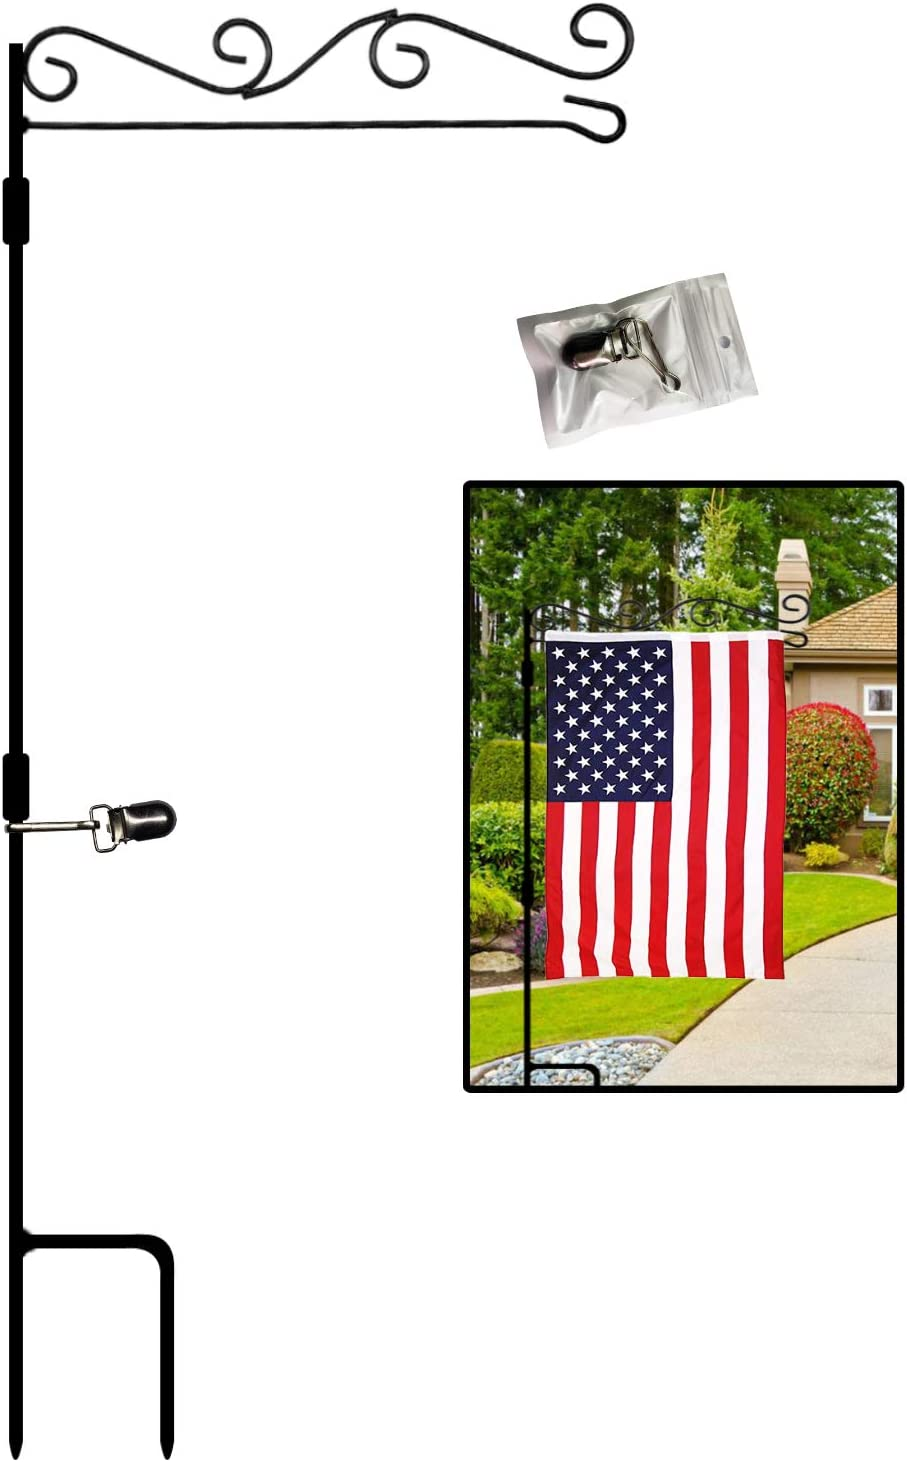 "Garden Flag Stand Premium Garden Flag Holder Pole with Anti-Wind Clip Black Metal 38""Hx15.7""W Weather Proof Paint for Outdoor Garden Lawn without Flag"